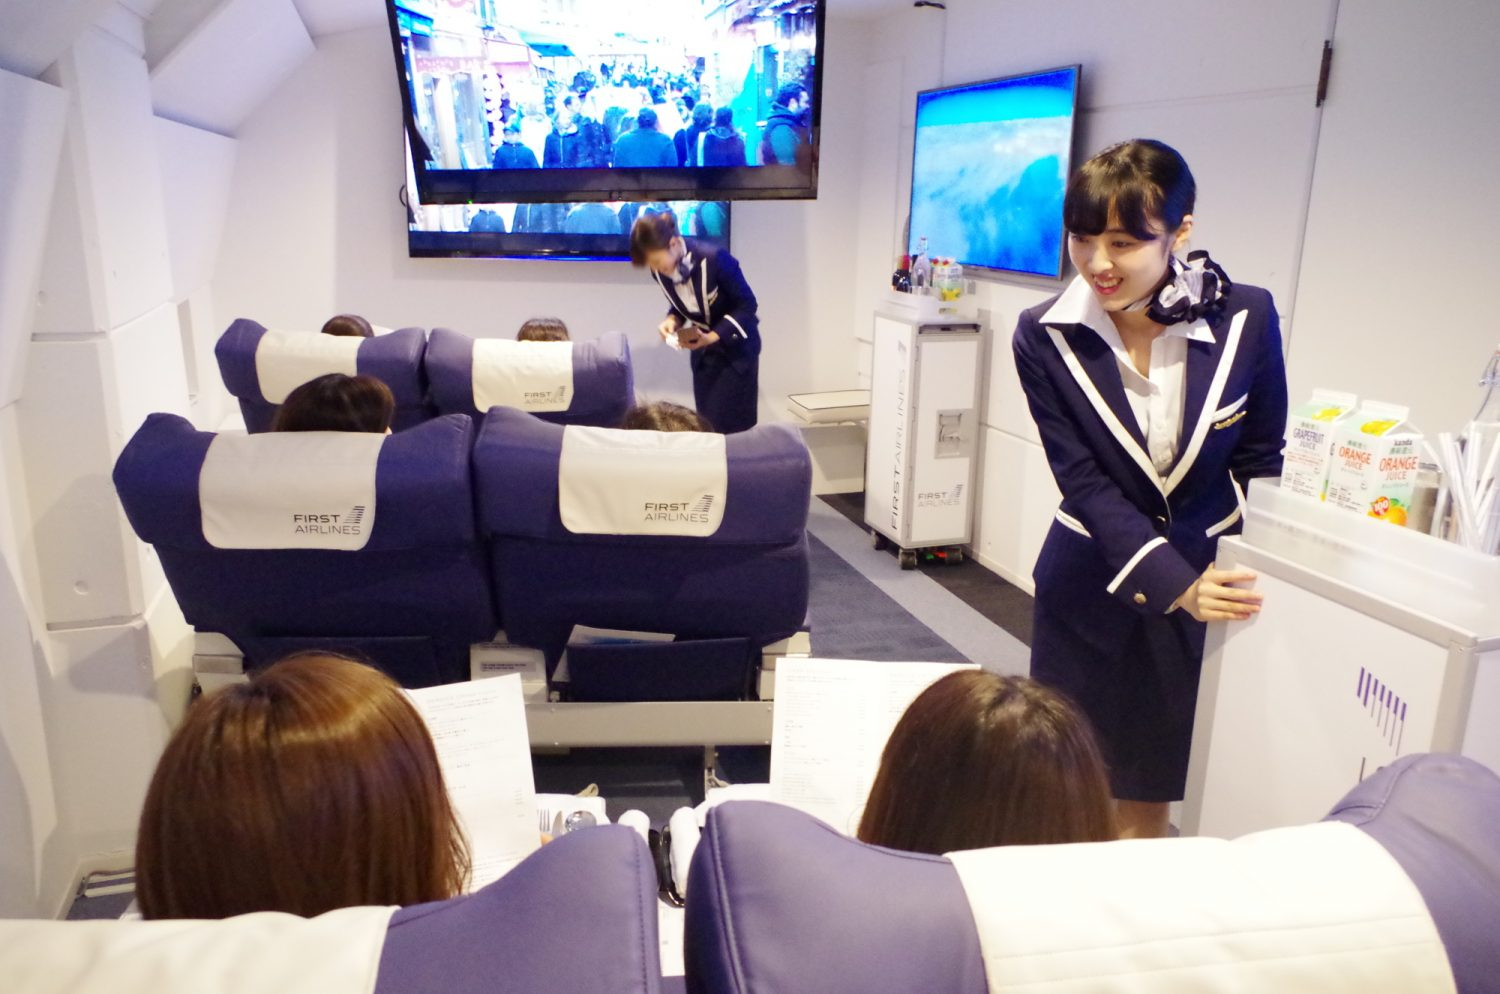 Japan launches a full virtual reality multisensory airline, with flights to Paris and Hawaii